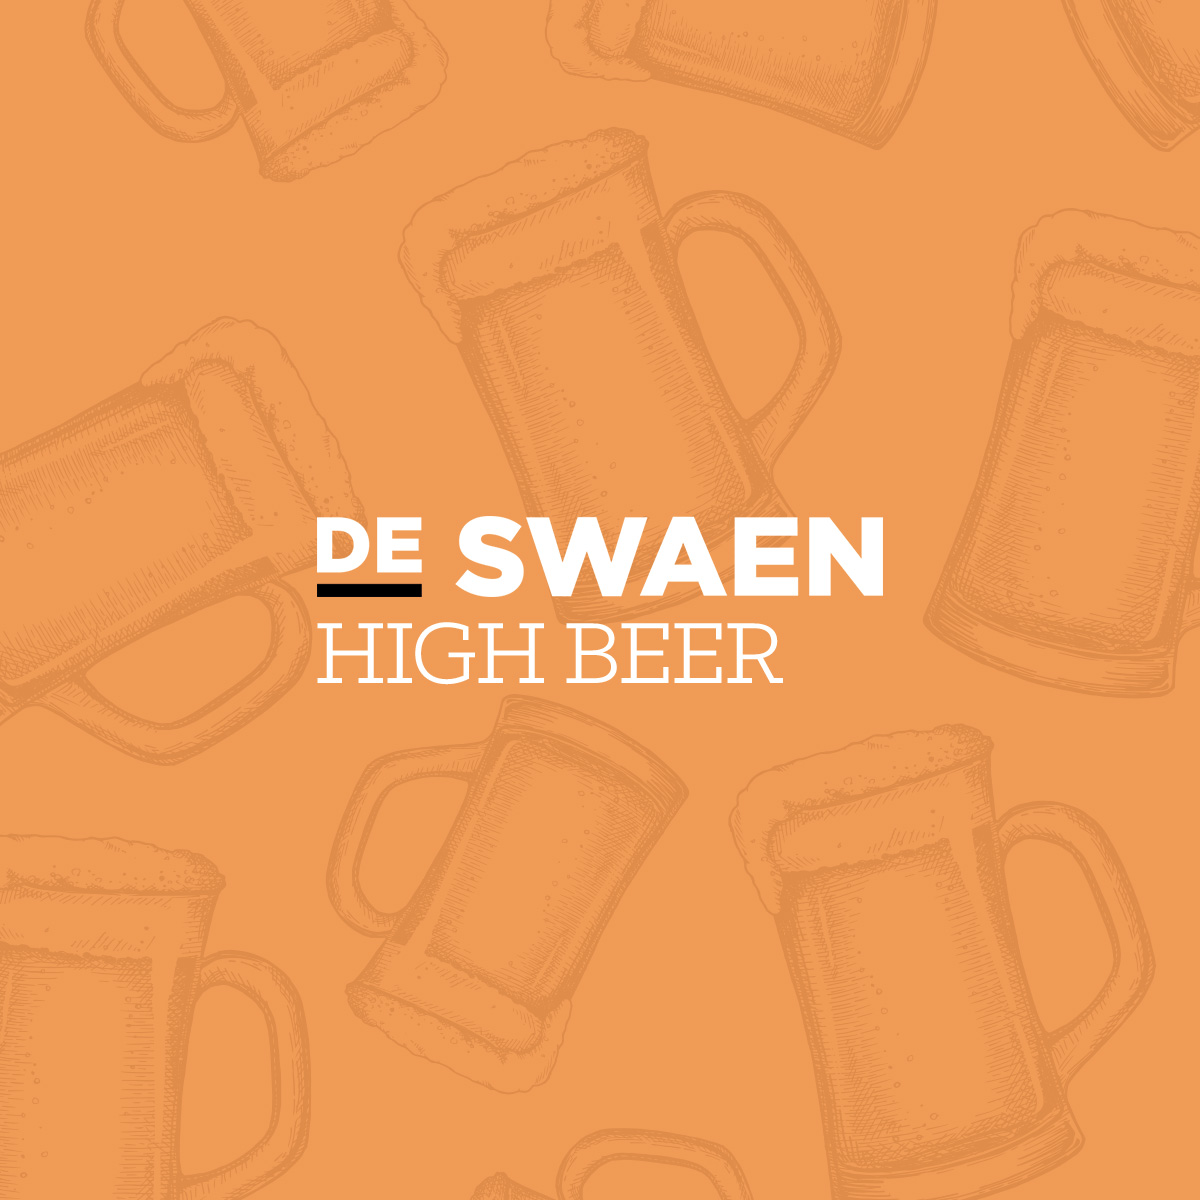 Eetcafe de Swaen High Beer